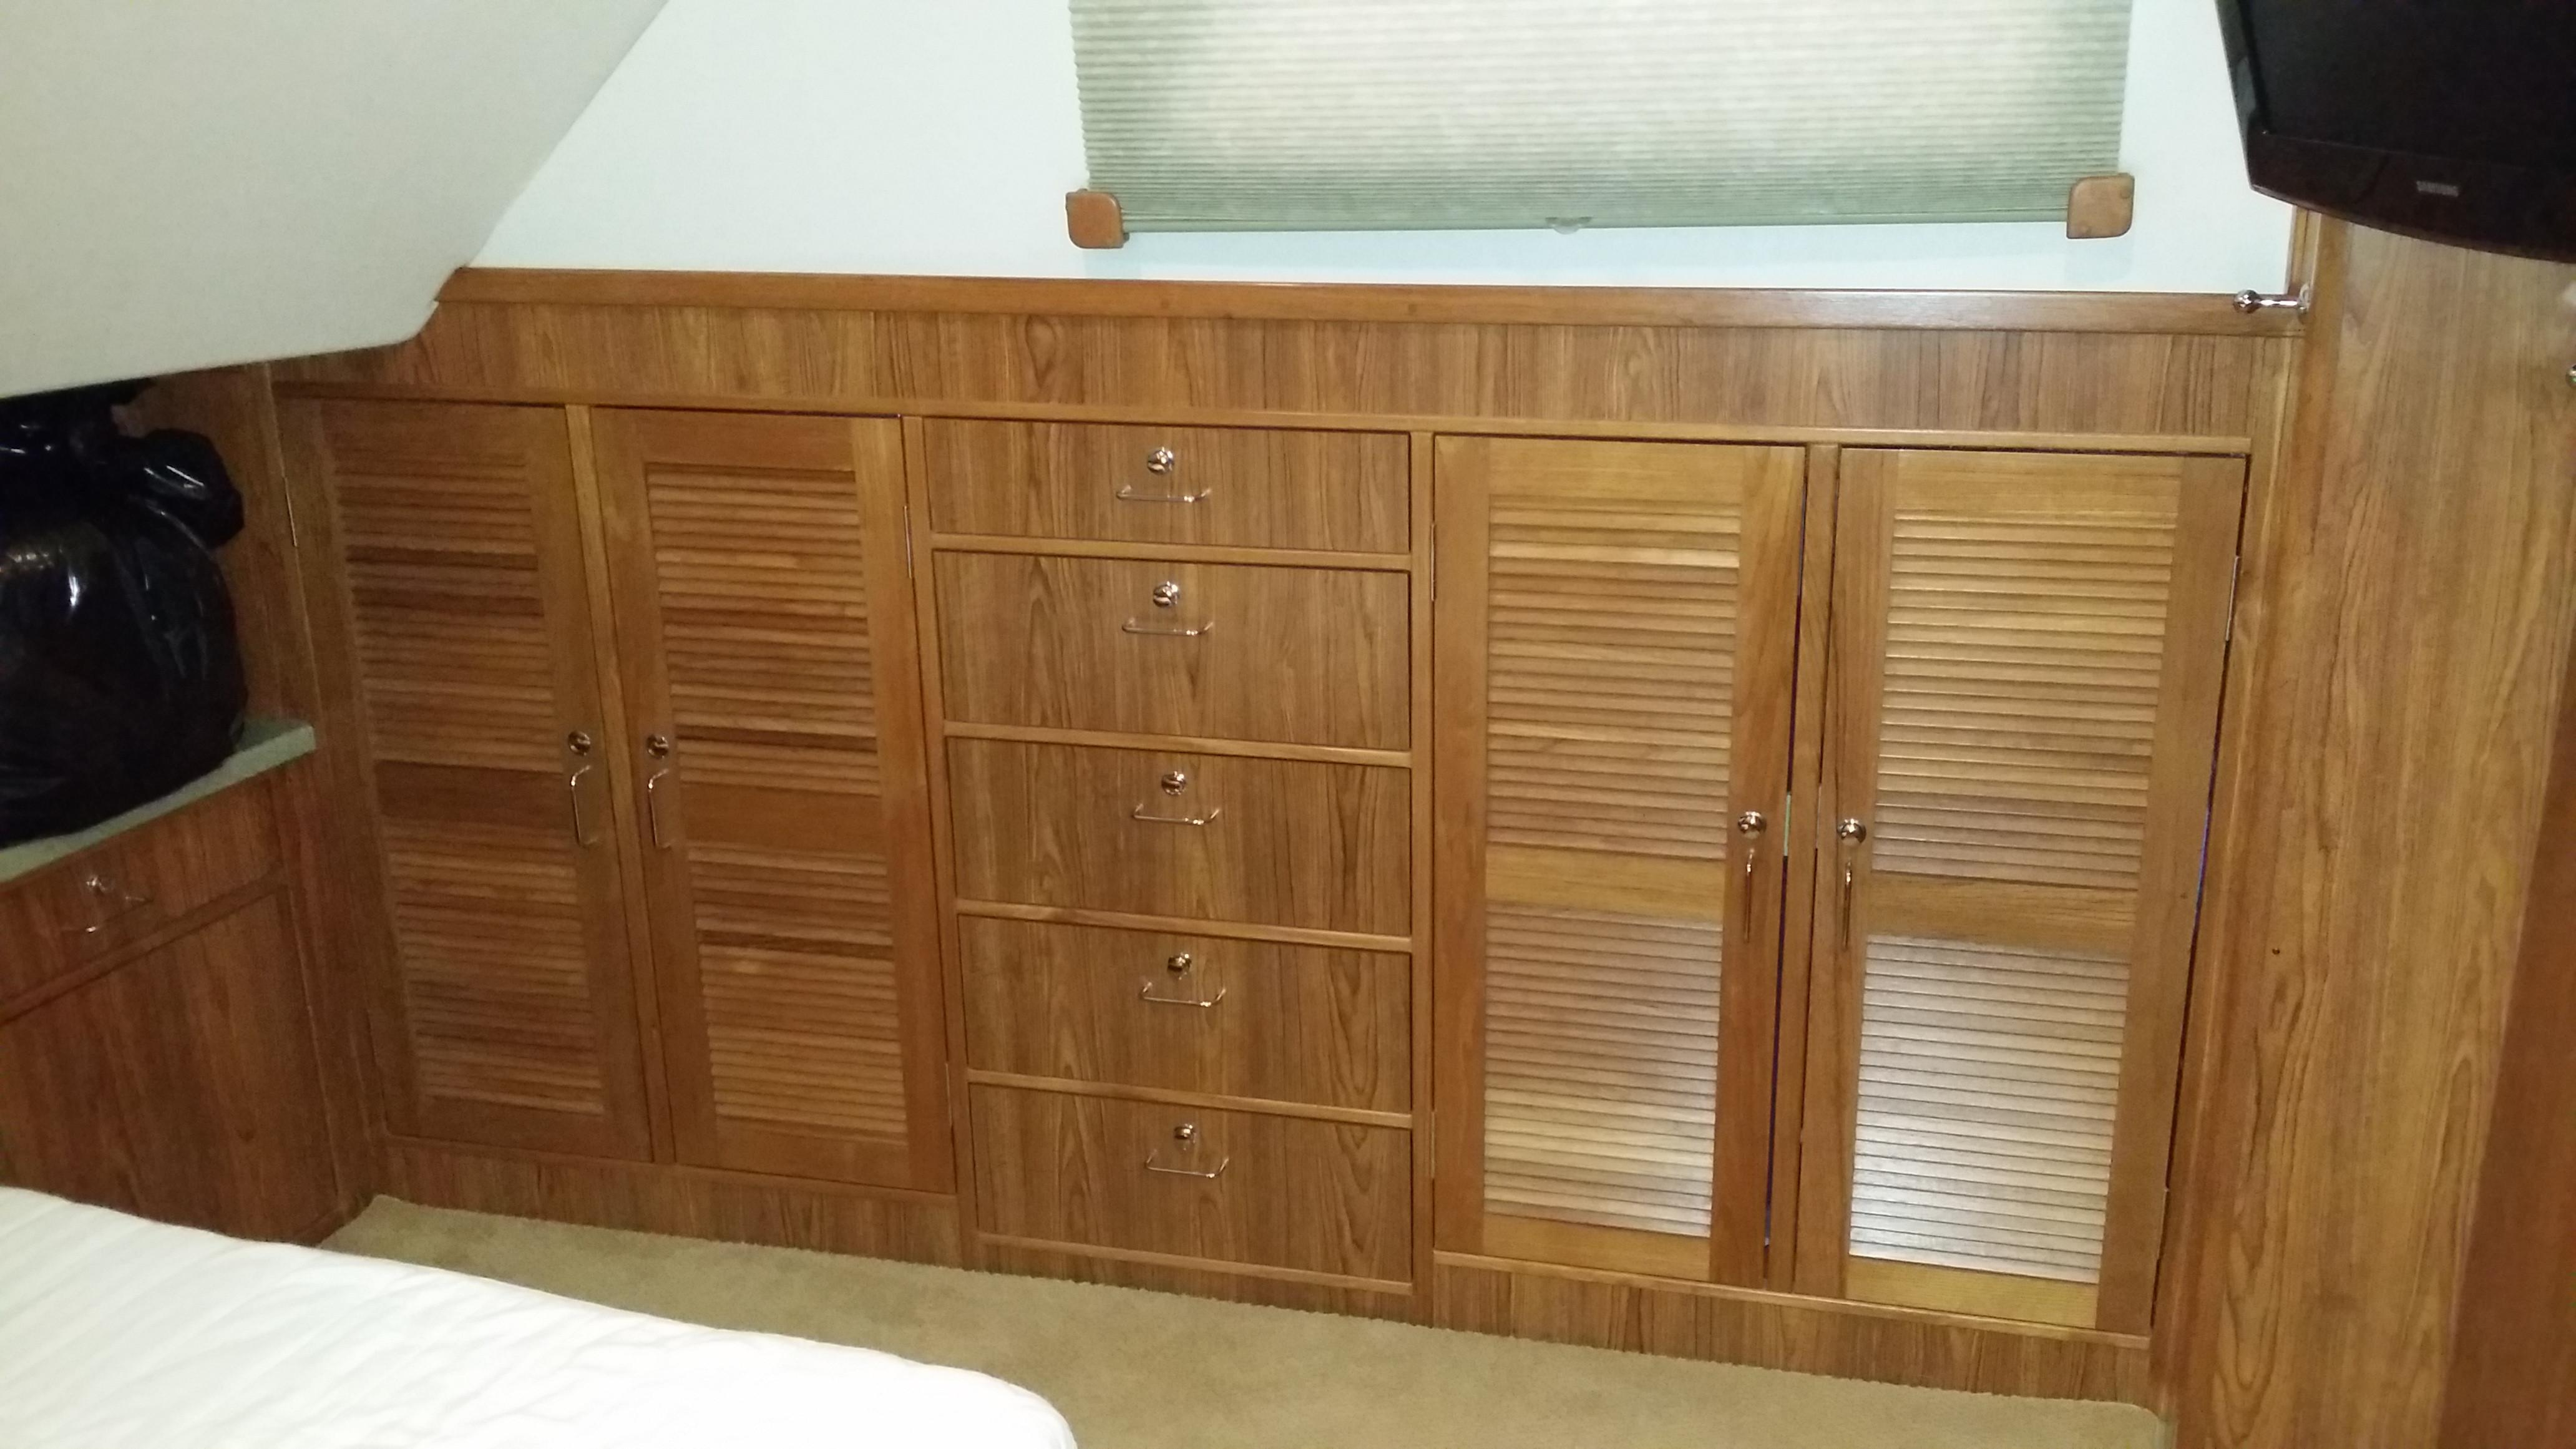 Master Cabinetry to Starboard